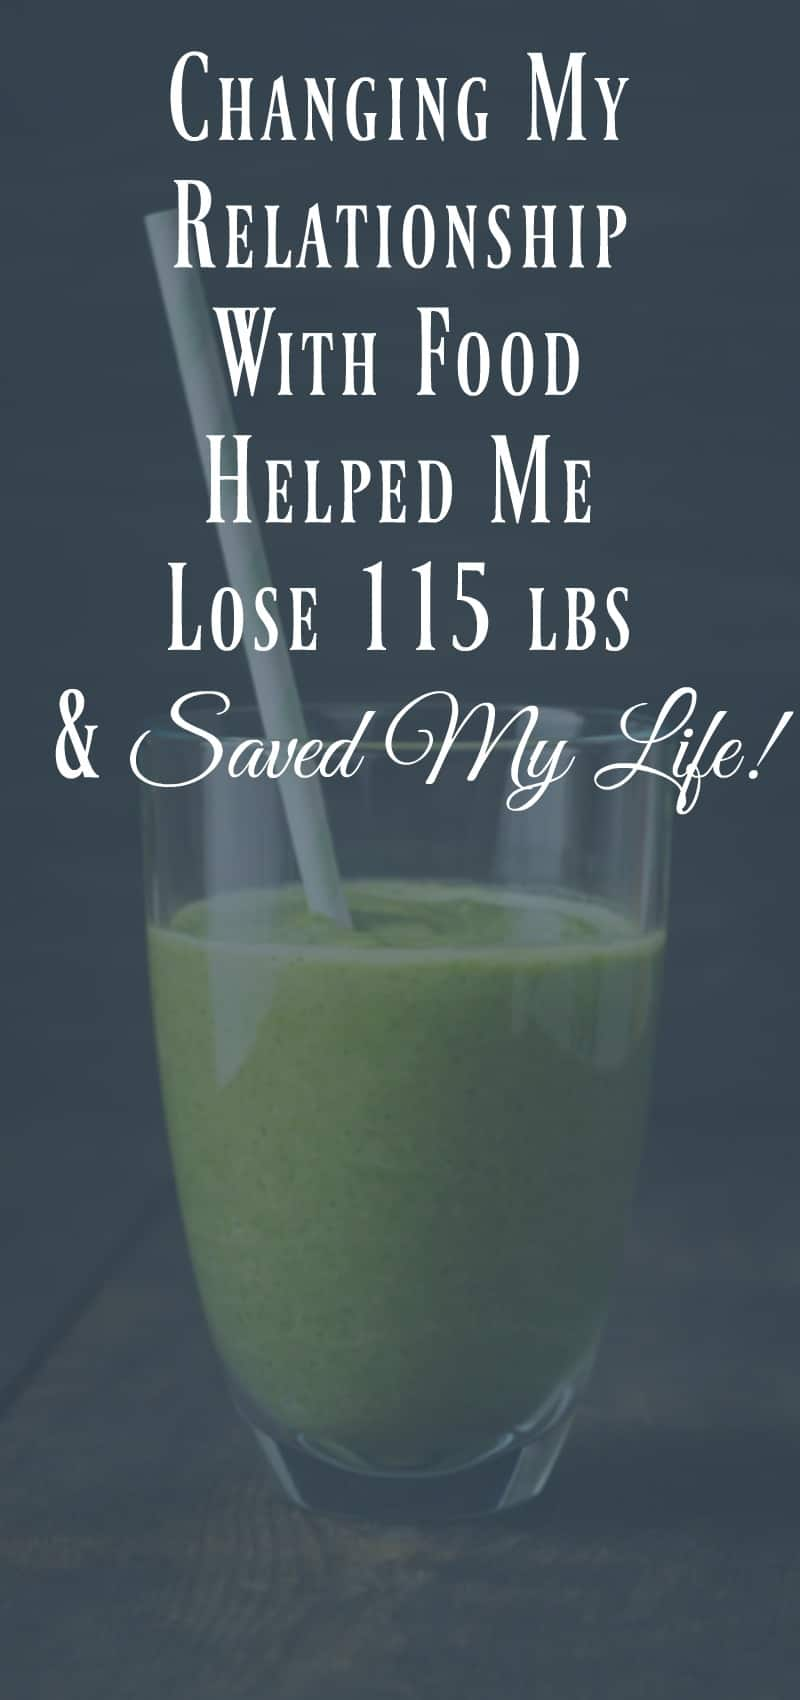 Changing My Relationship With Food Helped Me Lose -115Lbs and Saved My Life